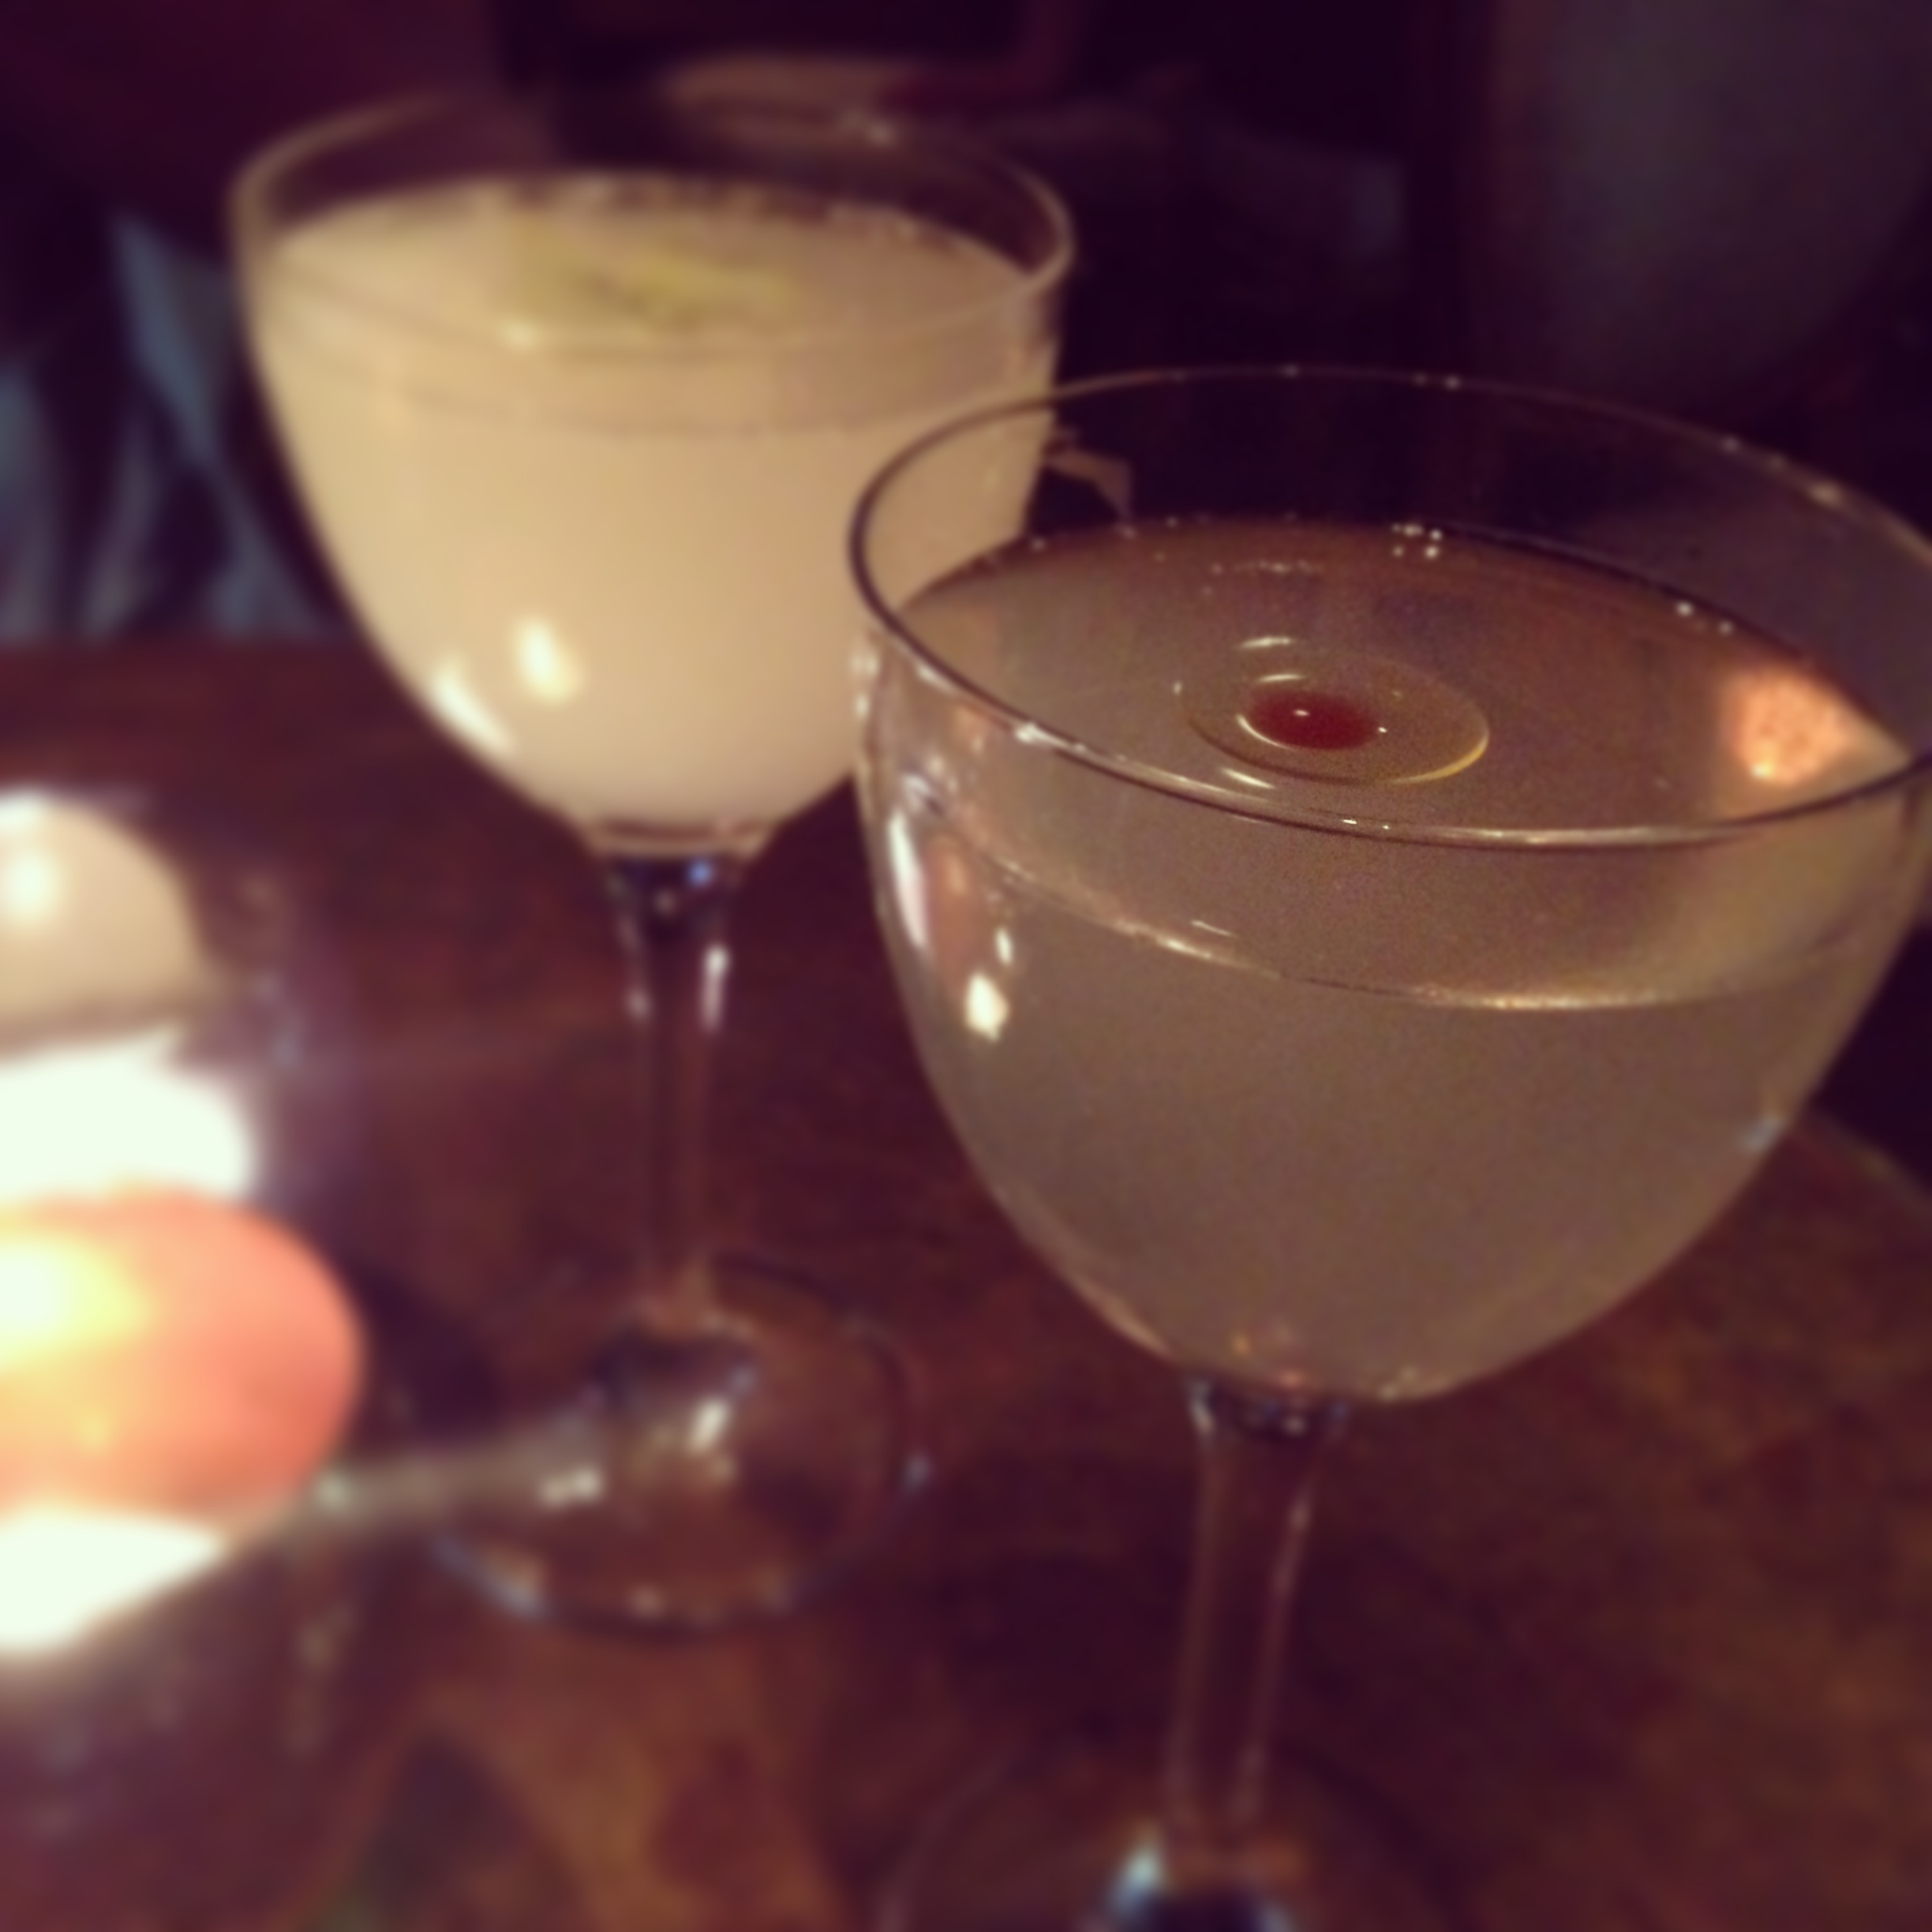 Bombay Sapphire The Ginthusiast